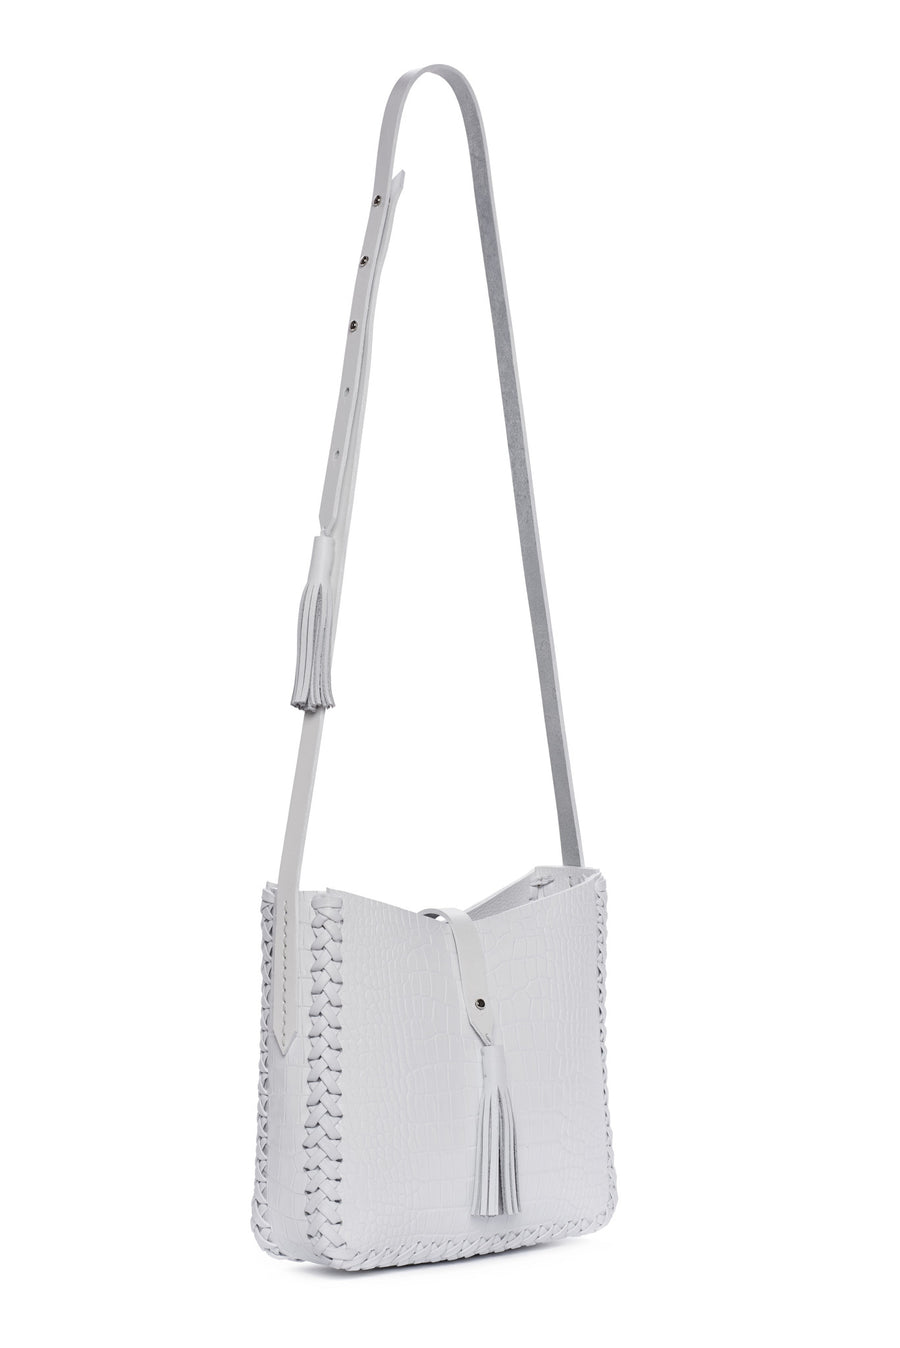 Summer White Embossed Croc Crocodile Alligator Cow Cowhide Leather Saddle Bag Wendy Nichol Handbag Purse Designer Handmade in NYC New York City black sued Whipstitch V Edge Open Square Structured Braided Adjustable Strap Fringe Tassels Tassel High Quality Leather